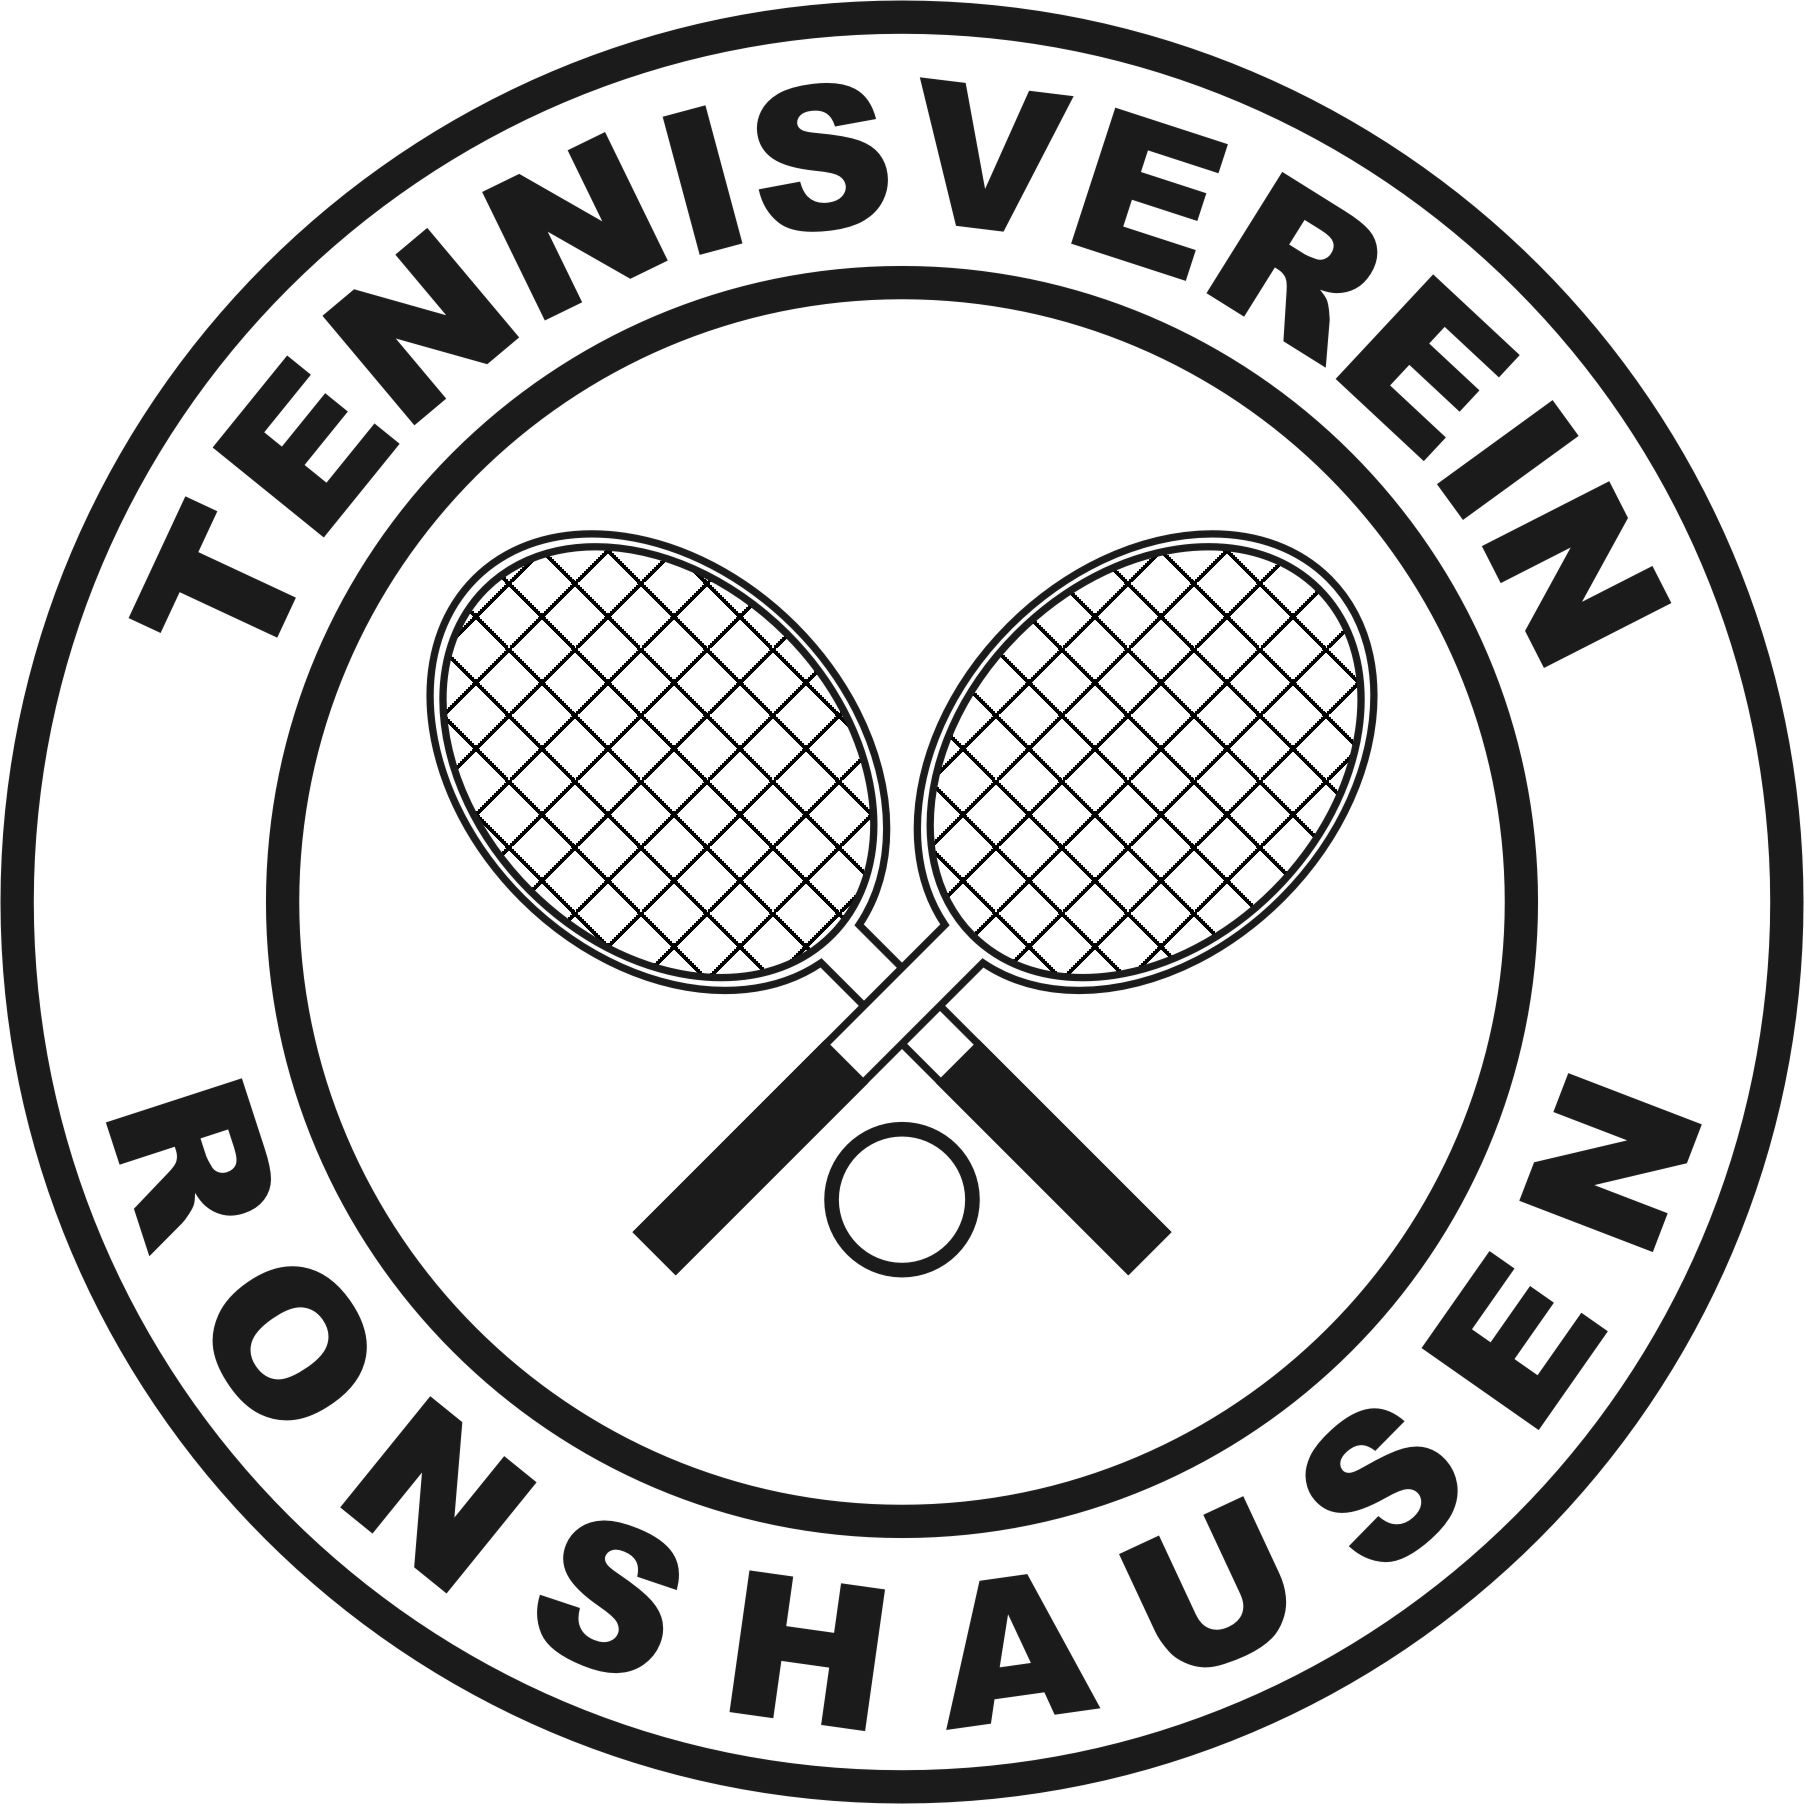 Logo Tennisverein Ronshausen